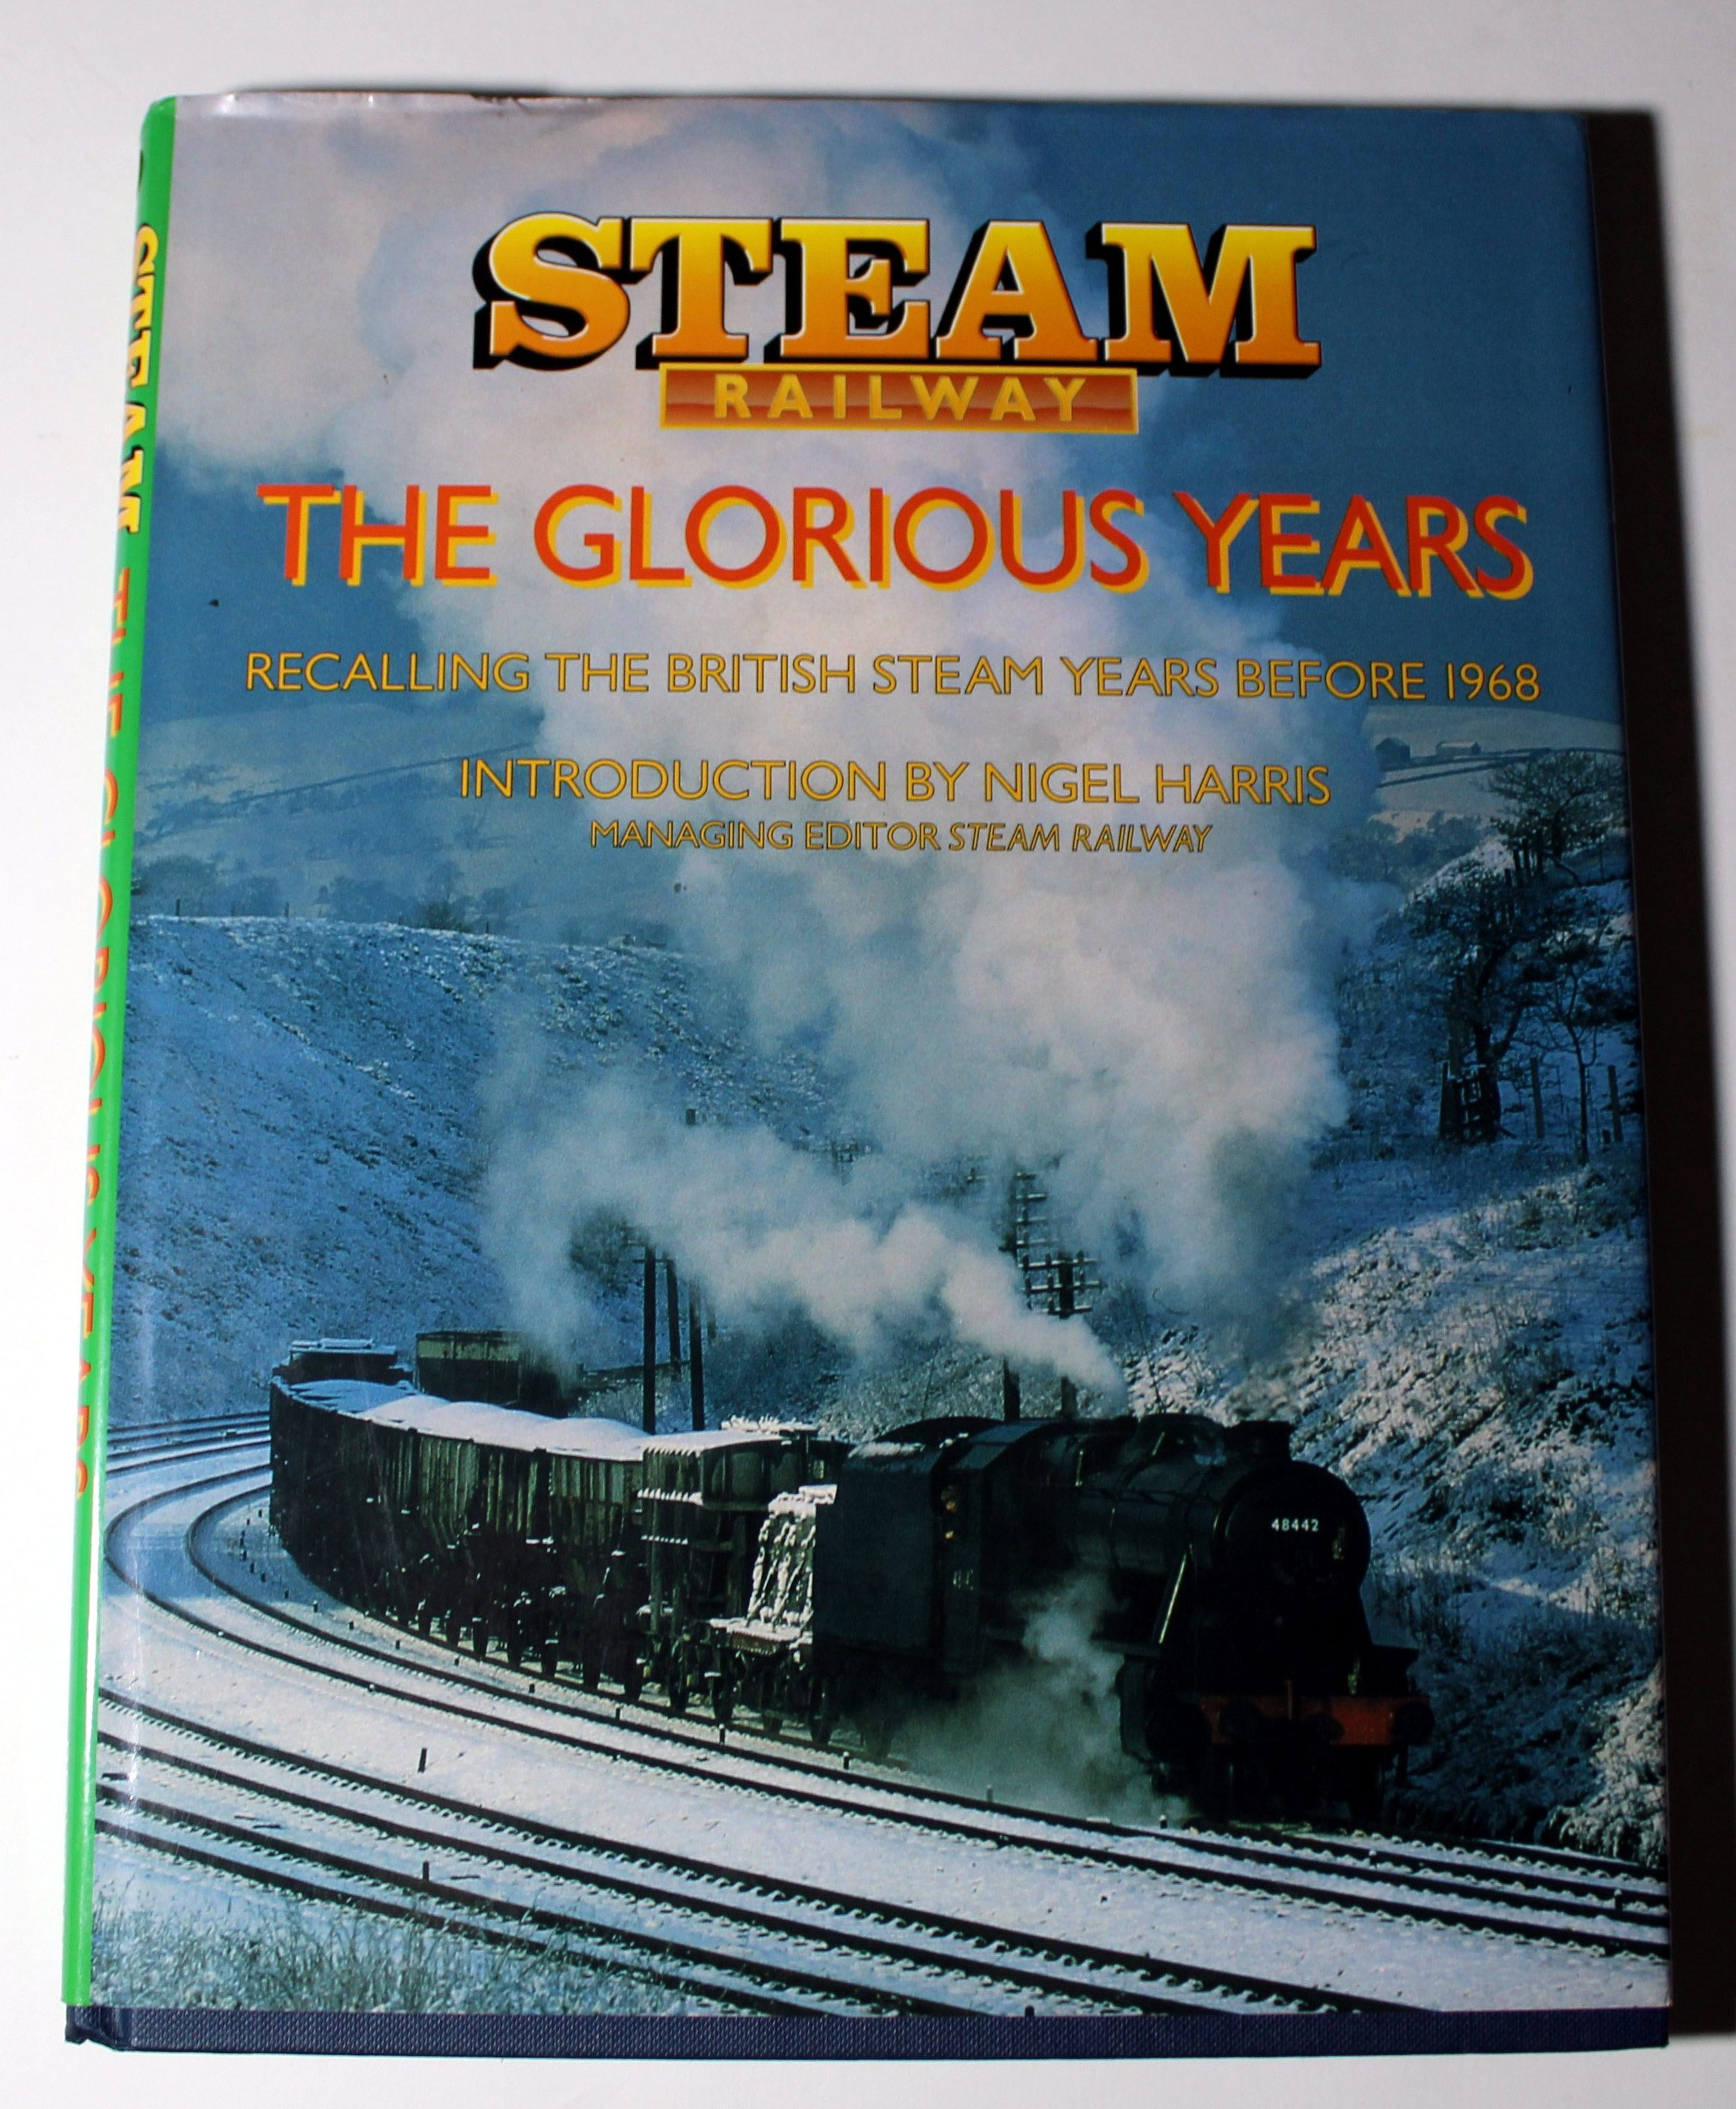 Steam railway - The glorious years- British steam